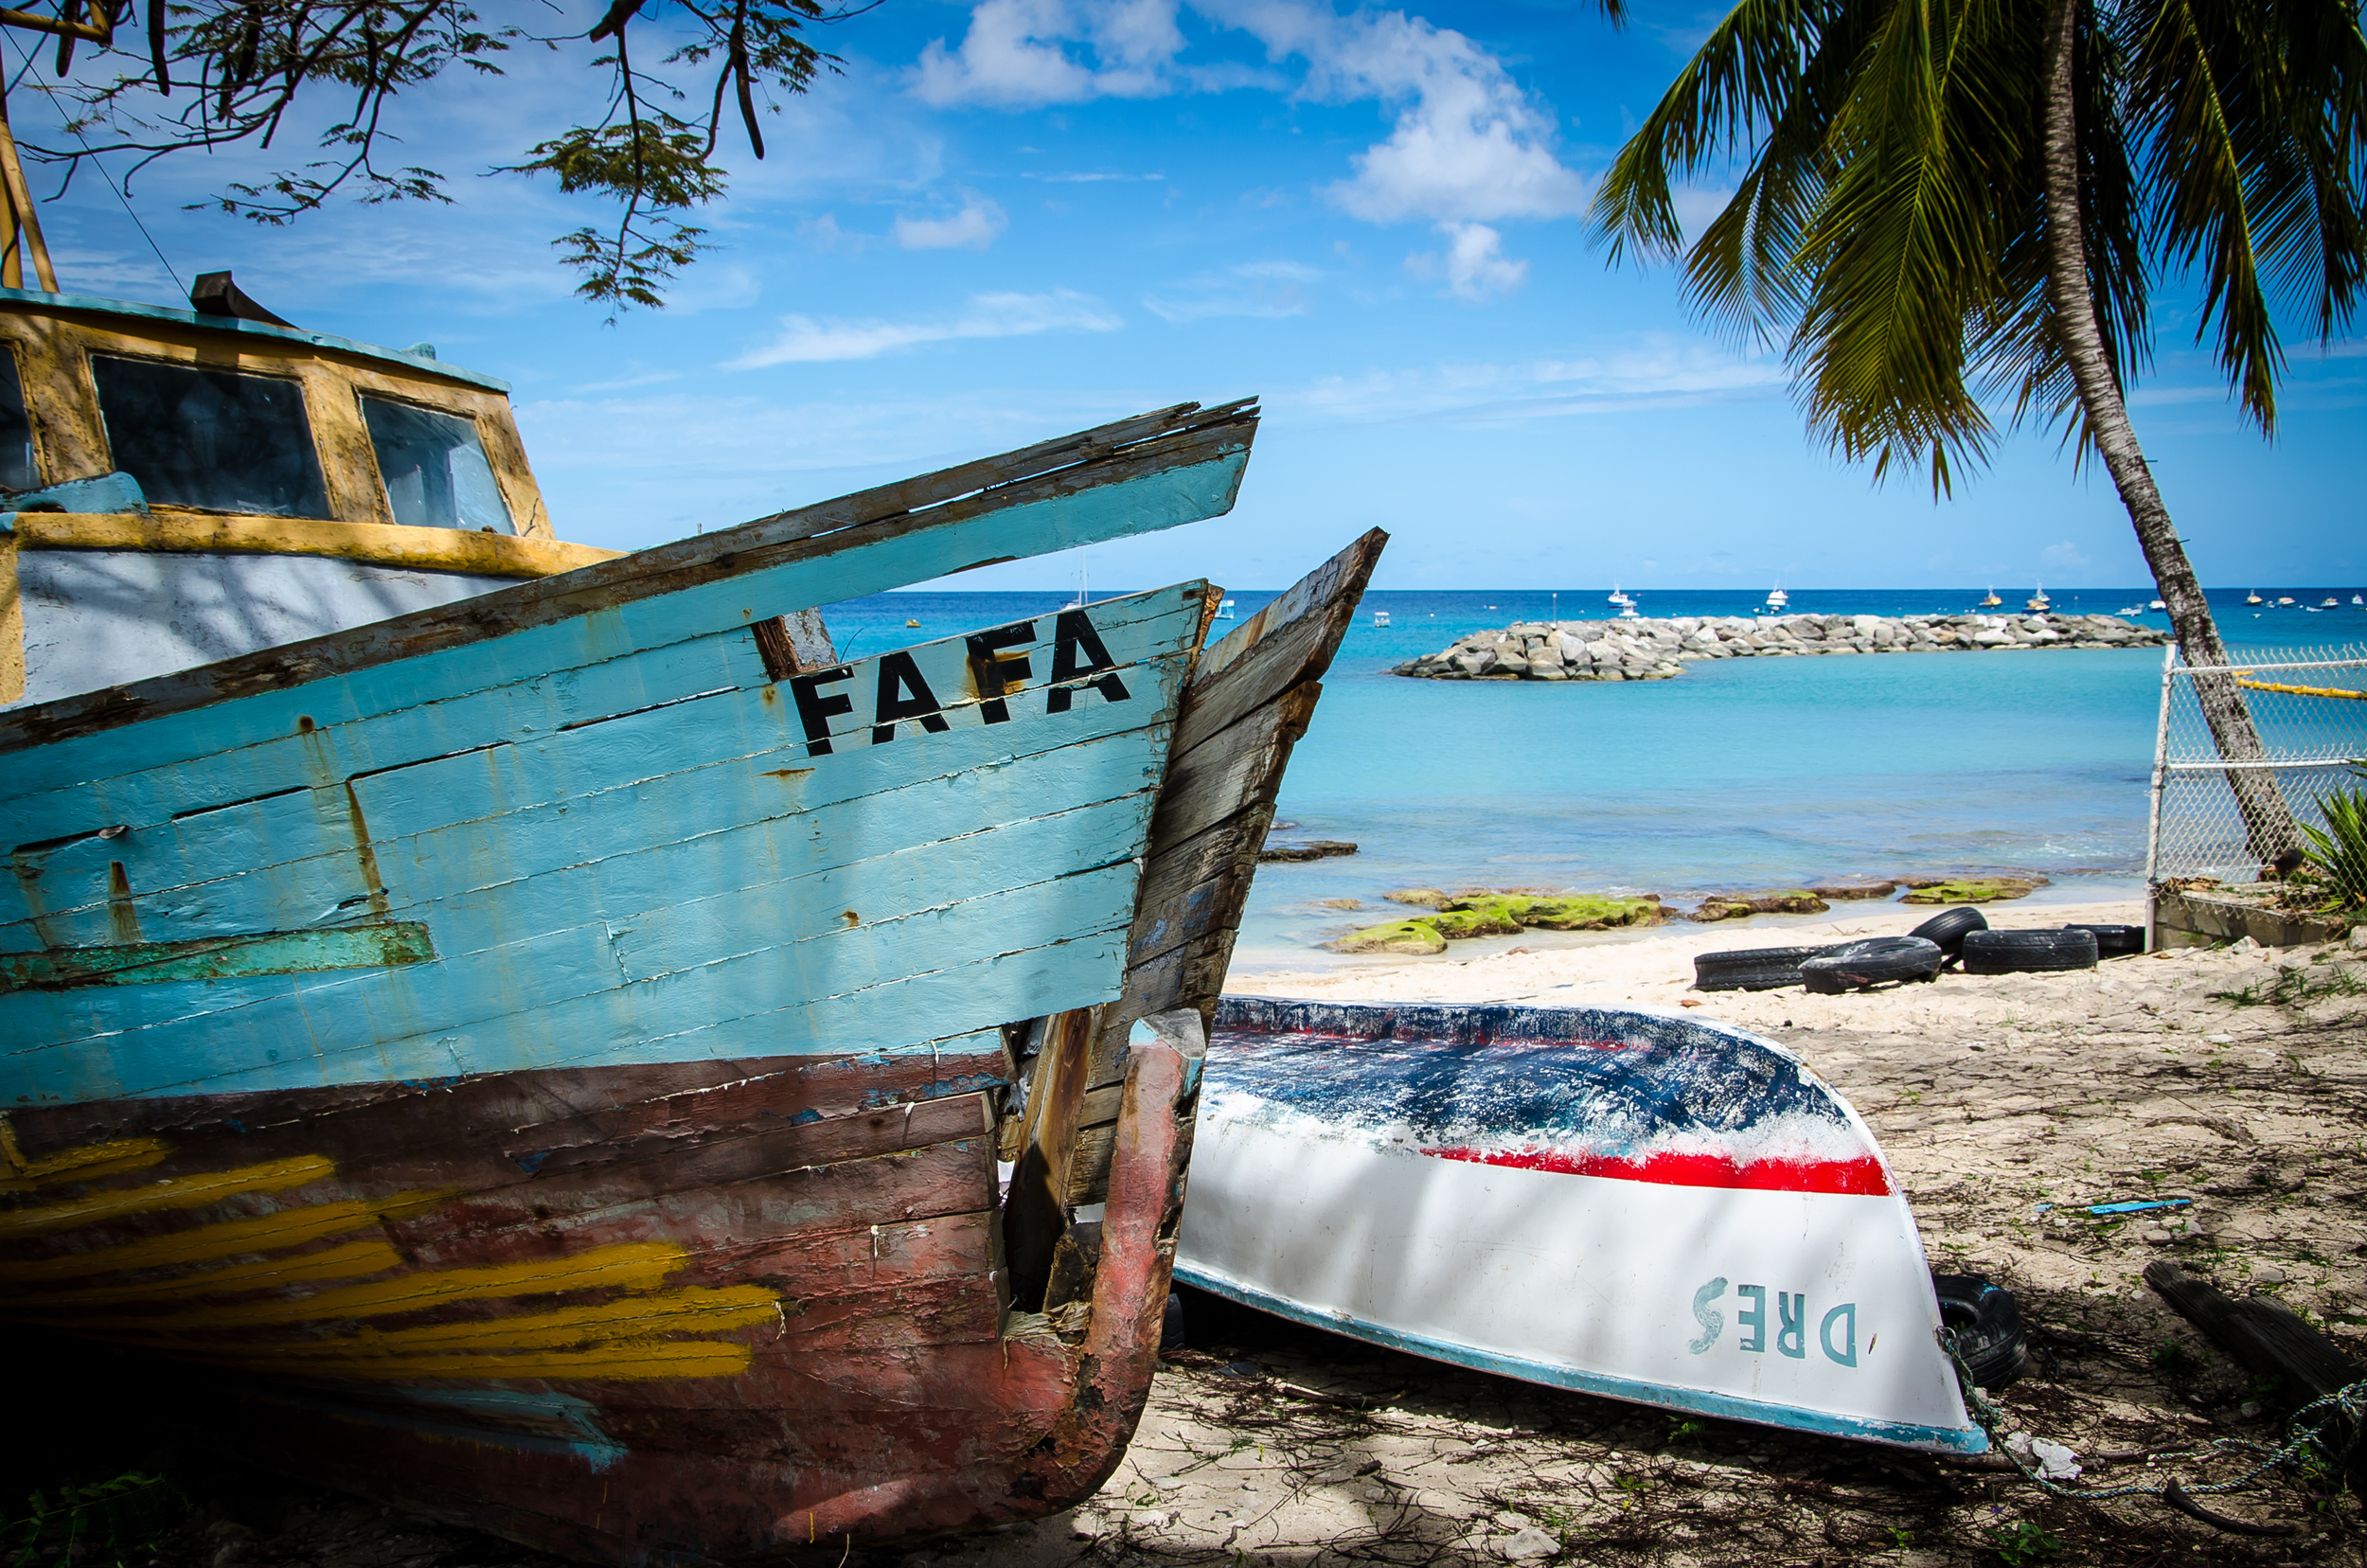 Old Fishing boats on the shore.